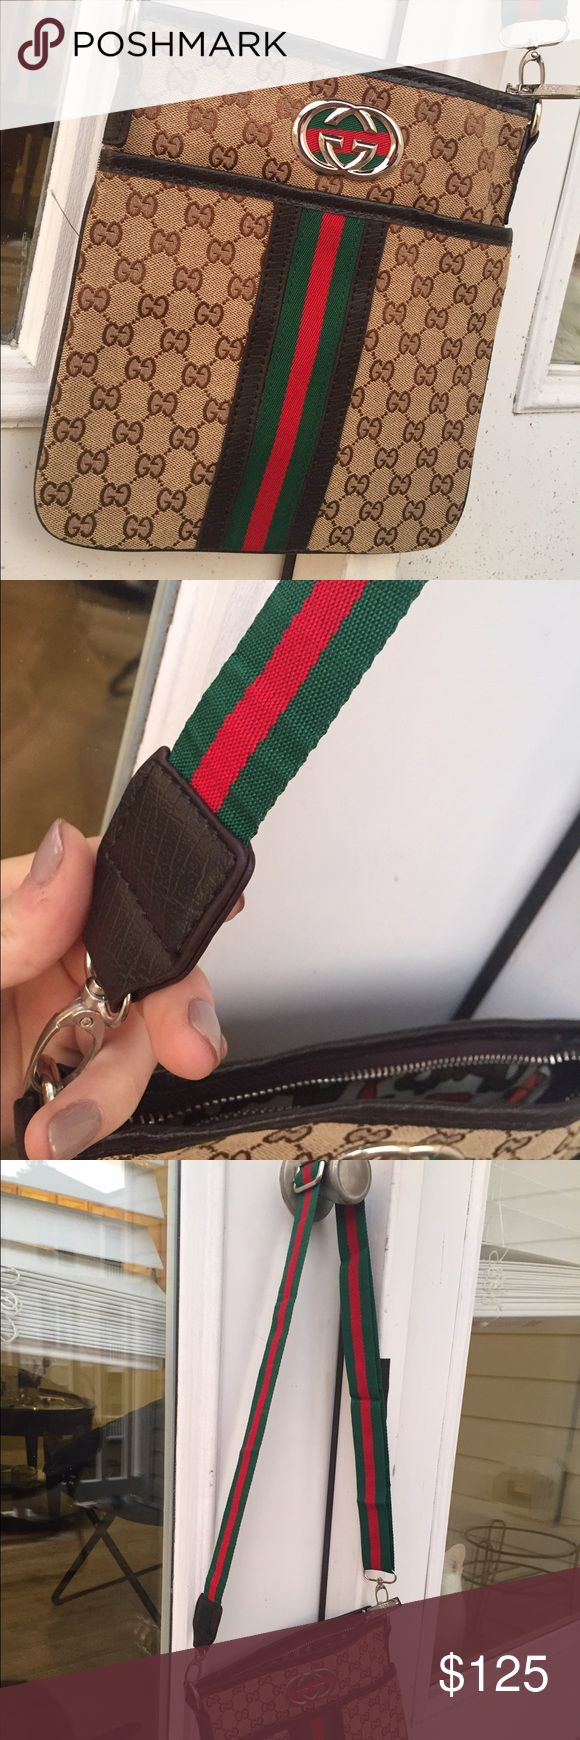 Gucci Messenger bag Gucci cross body bag! In Excellent condition. Gucci Bags Crossbody Bags